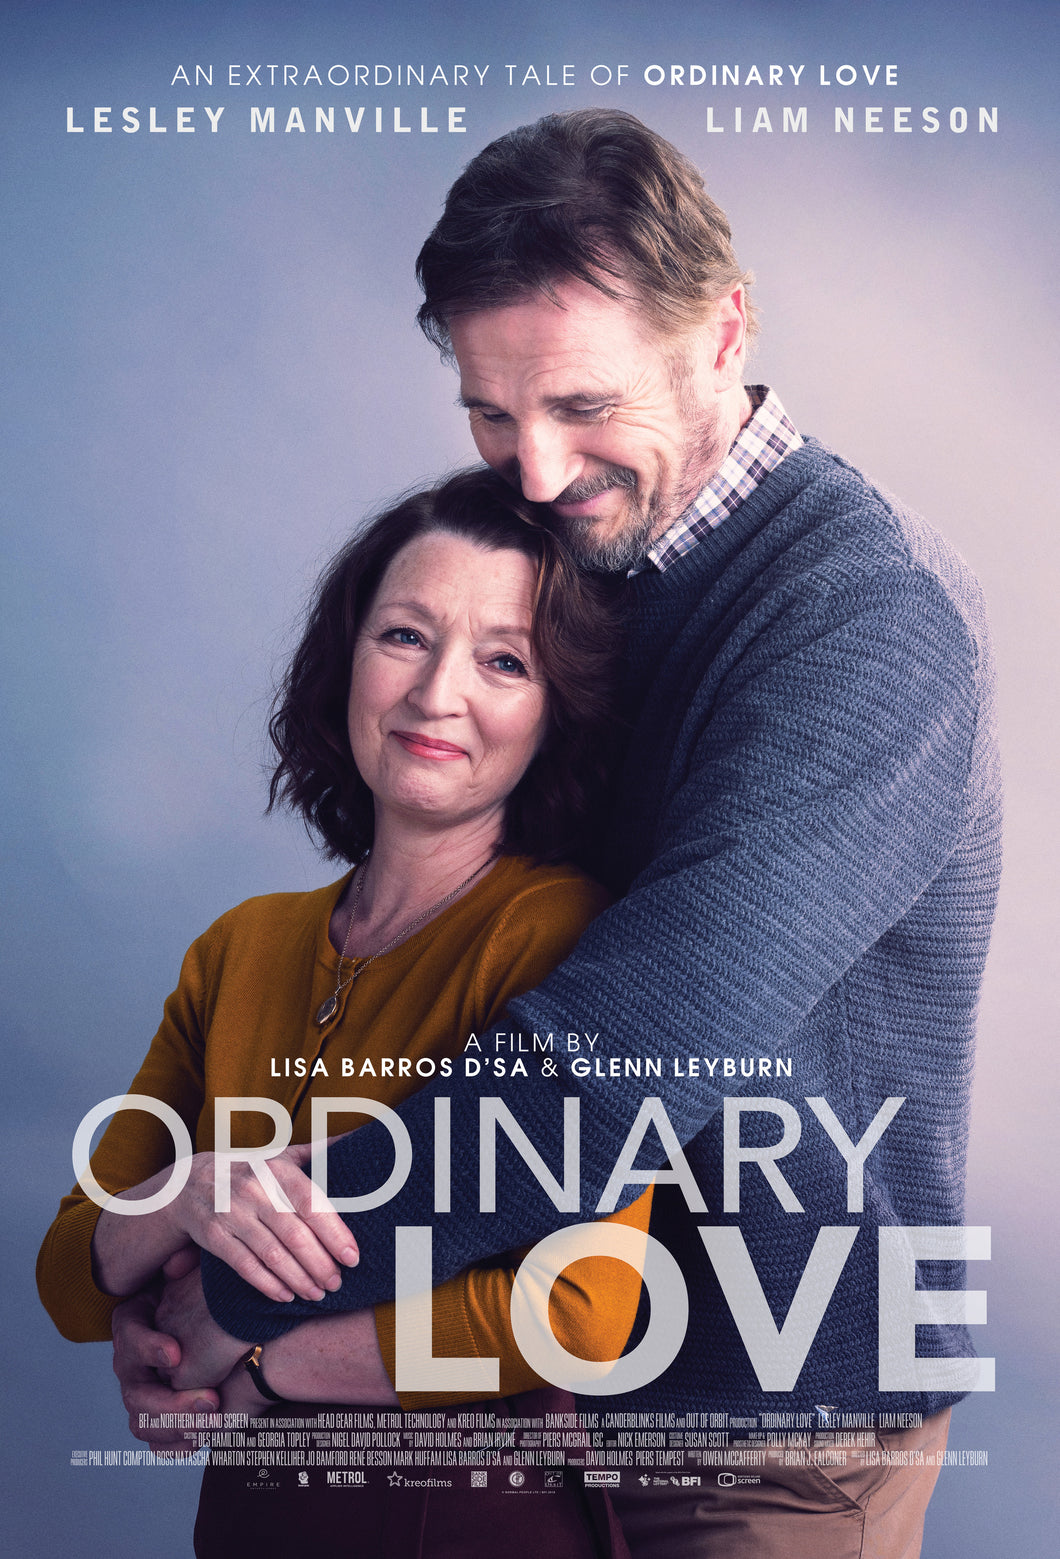 Poster Pelicula Ordinary Love